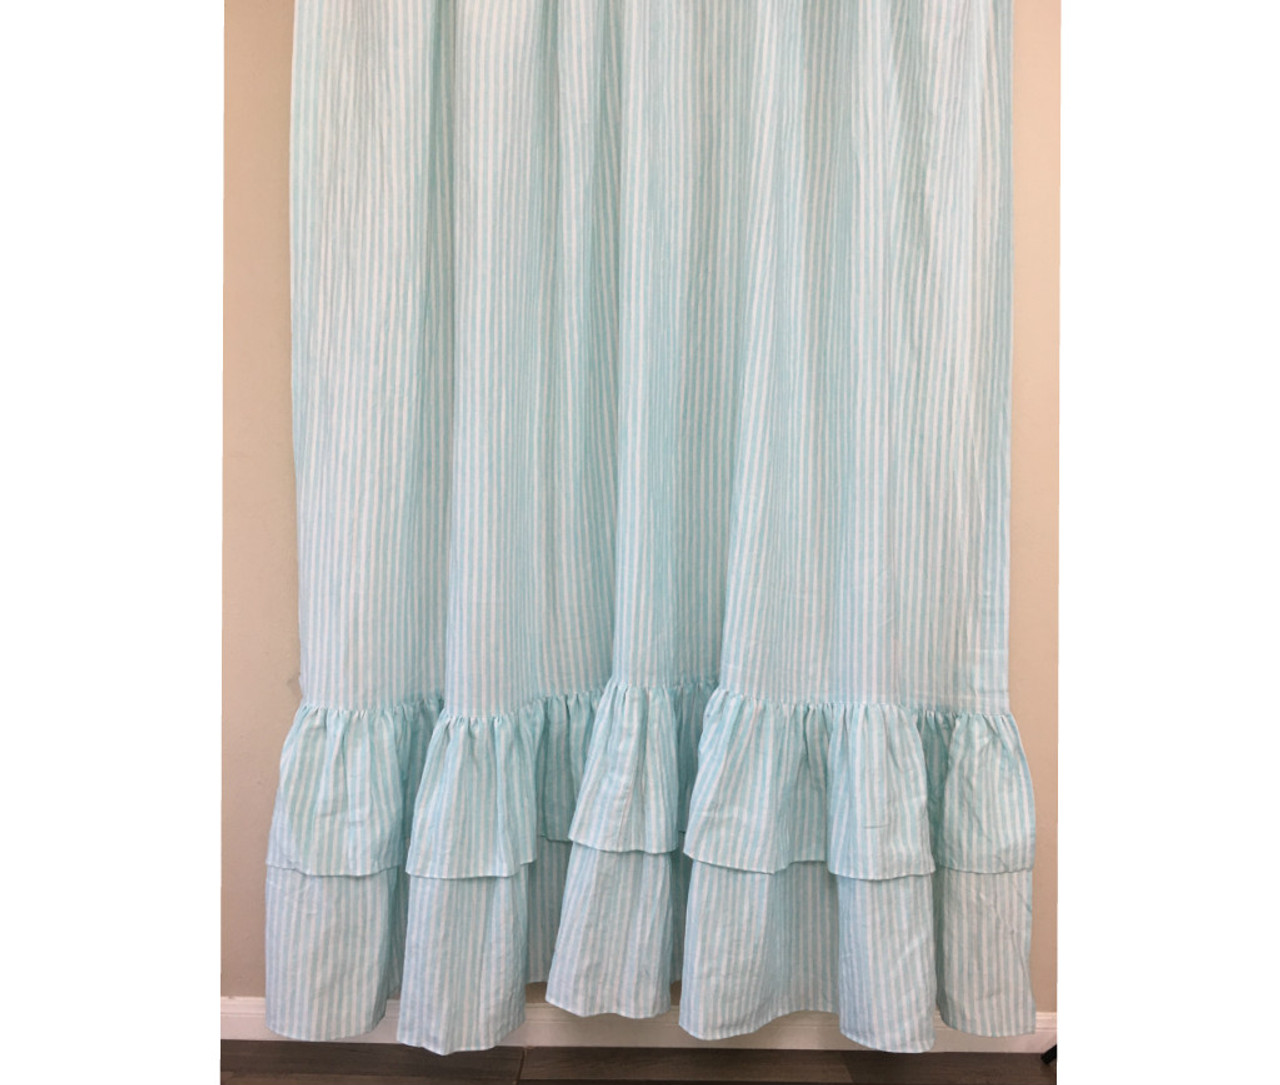 Green And White Striped Shower Curtain With Two Tiered Ruffles Linen